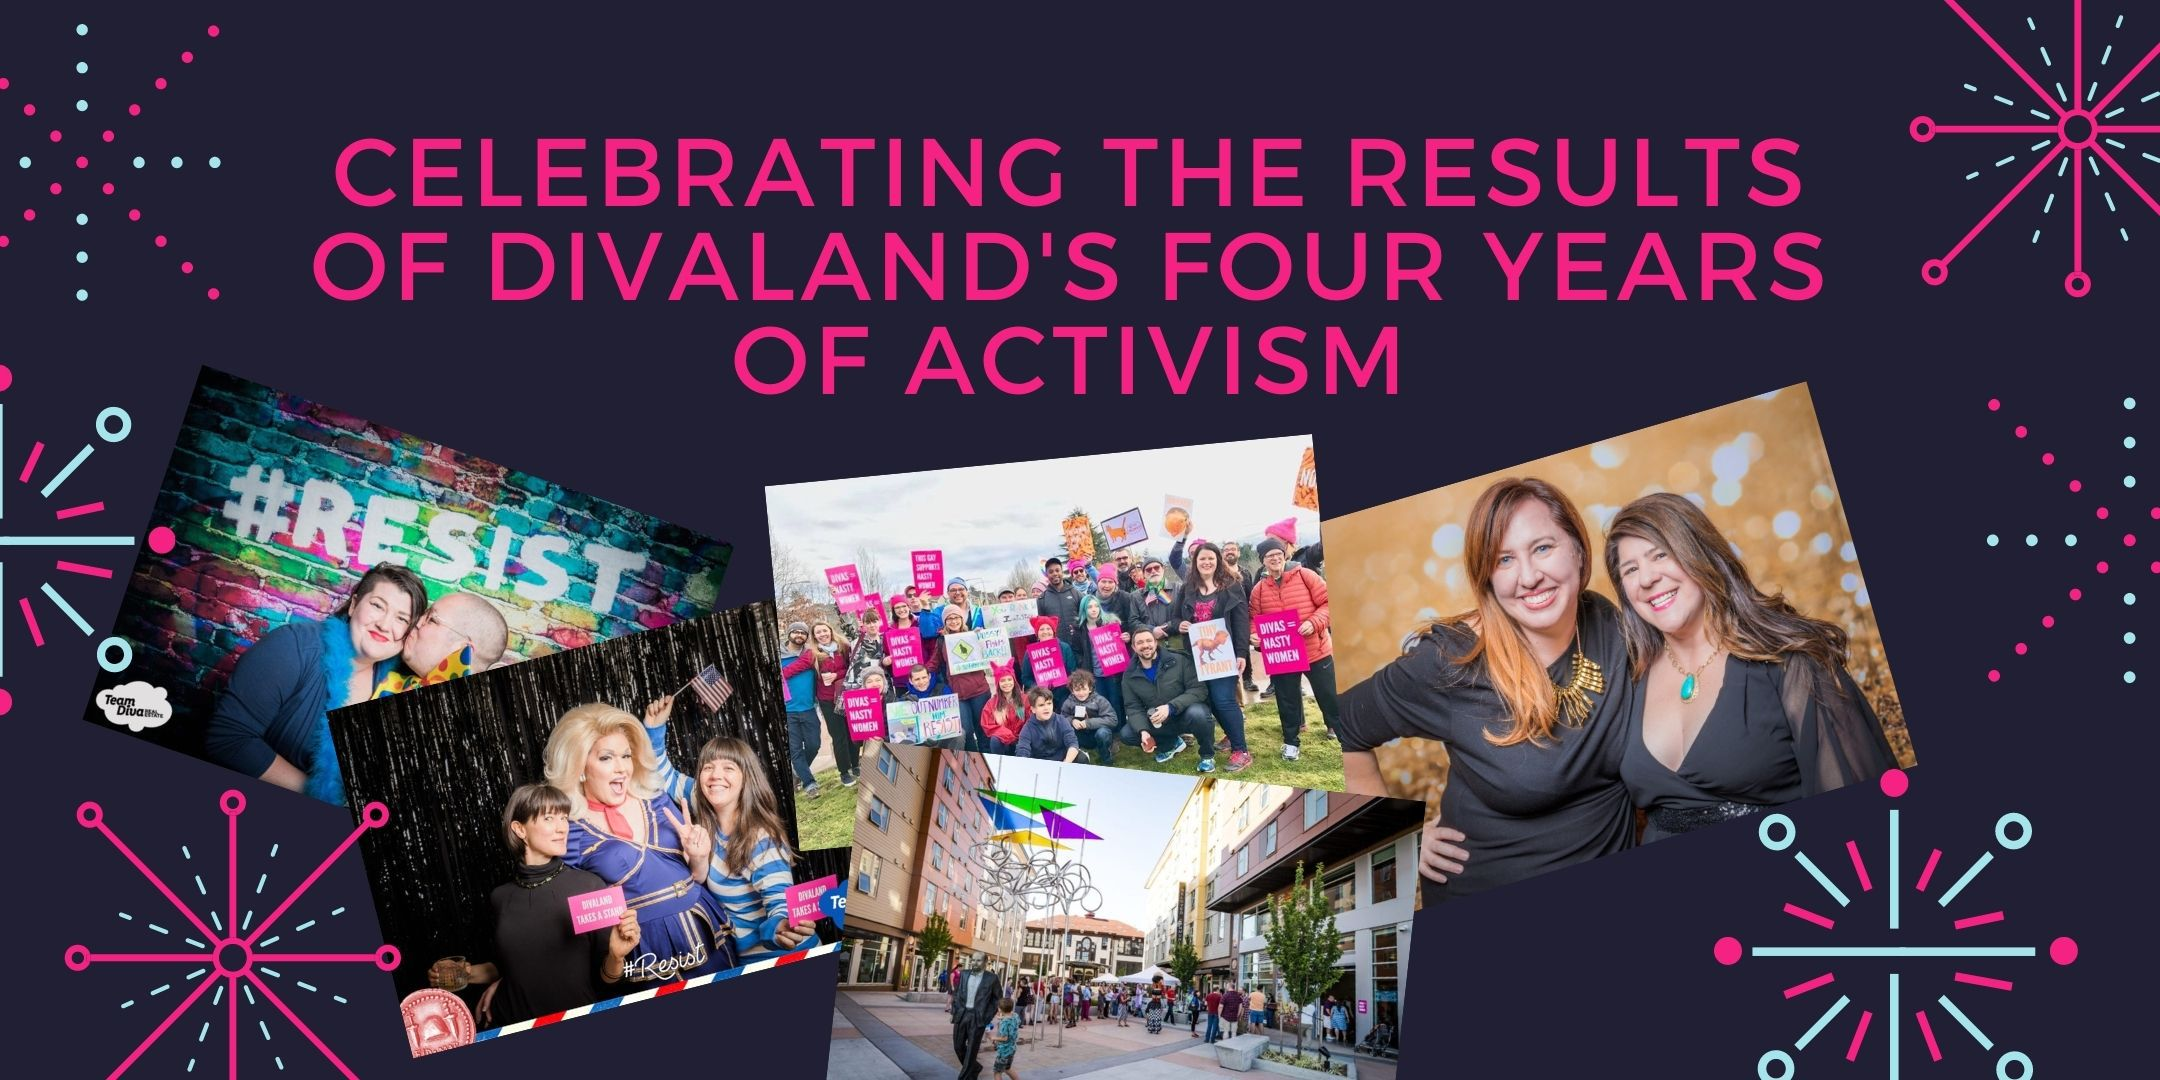 Celebrating four years of political activism in Divaland